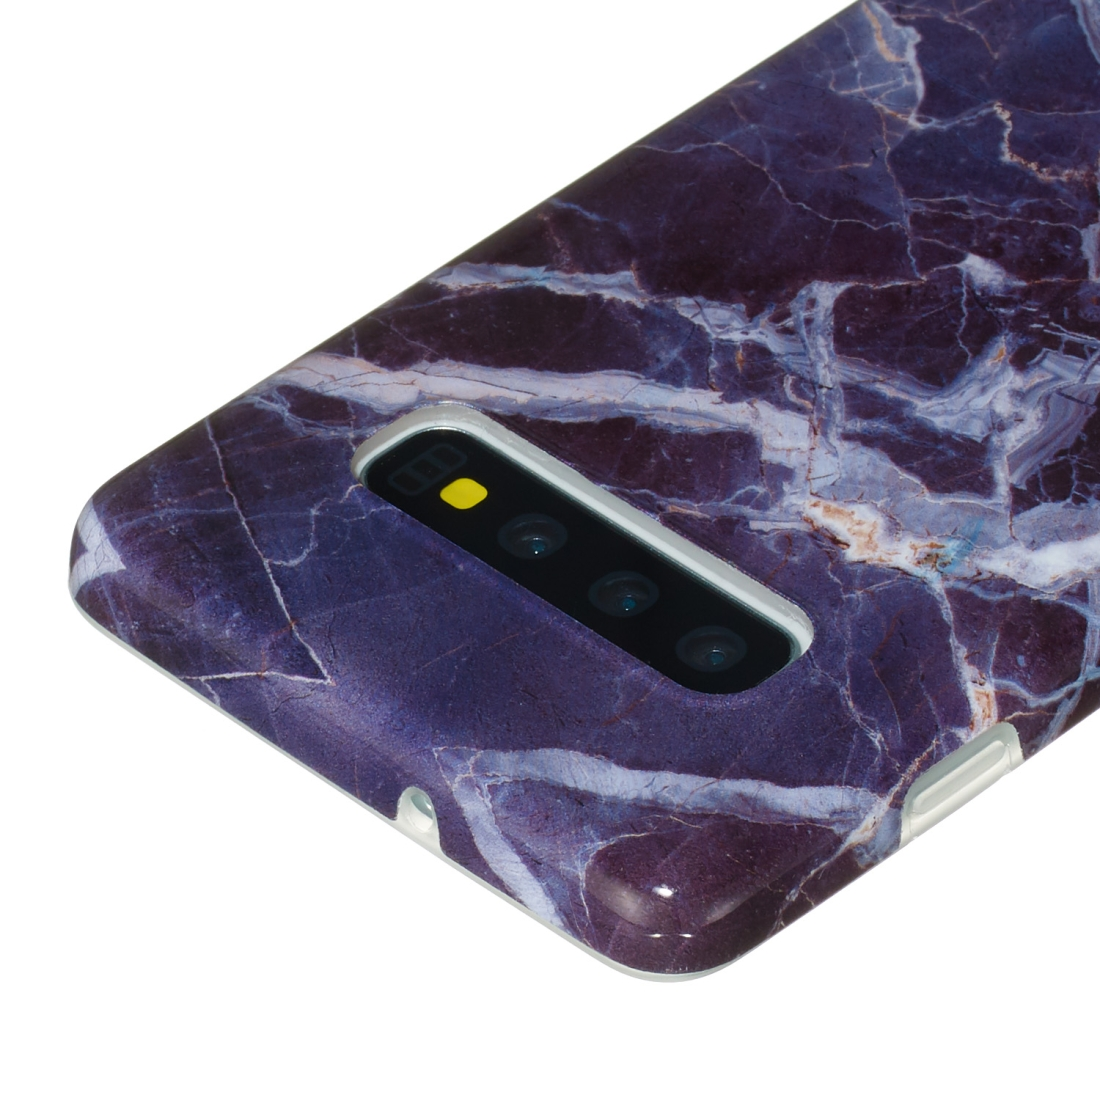 TPU Protective Case For Galaxy S10 Plus (Gray Marble)